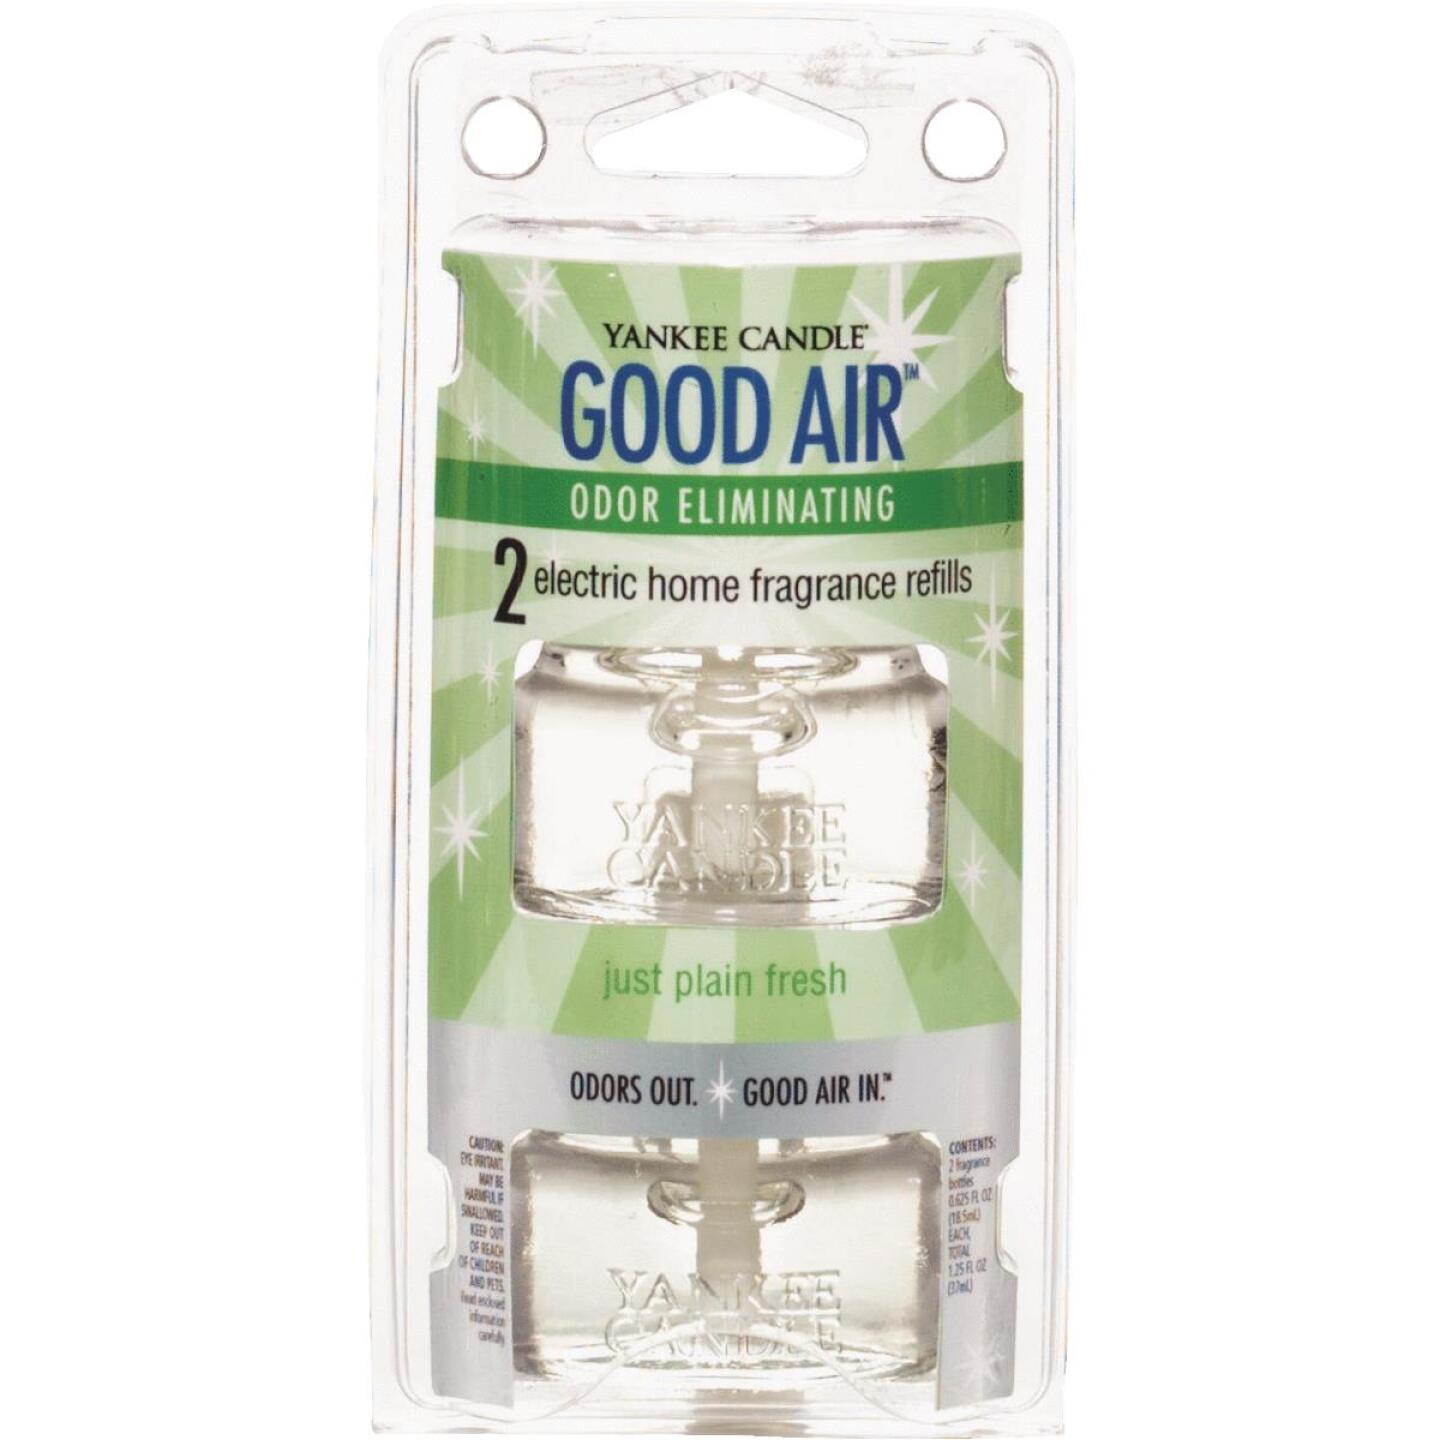 Yankee Candle Good Air Just Plain Fresh Freshener Refill (2-Count) Image 1